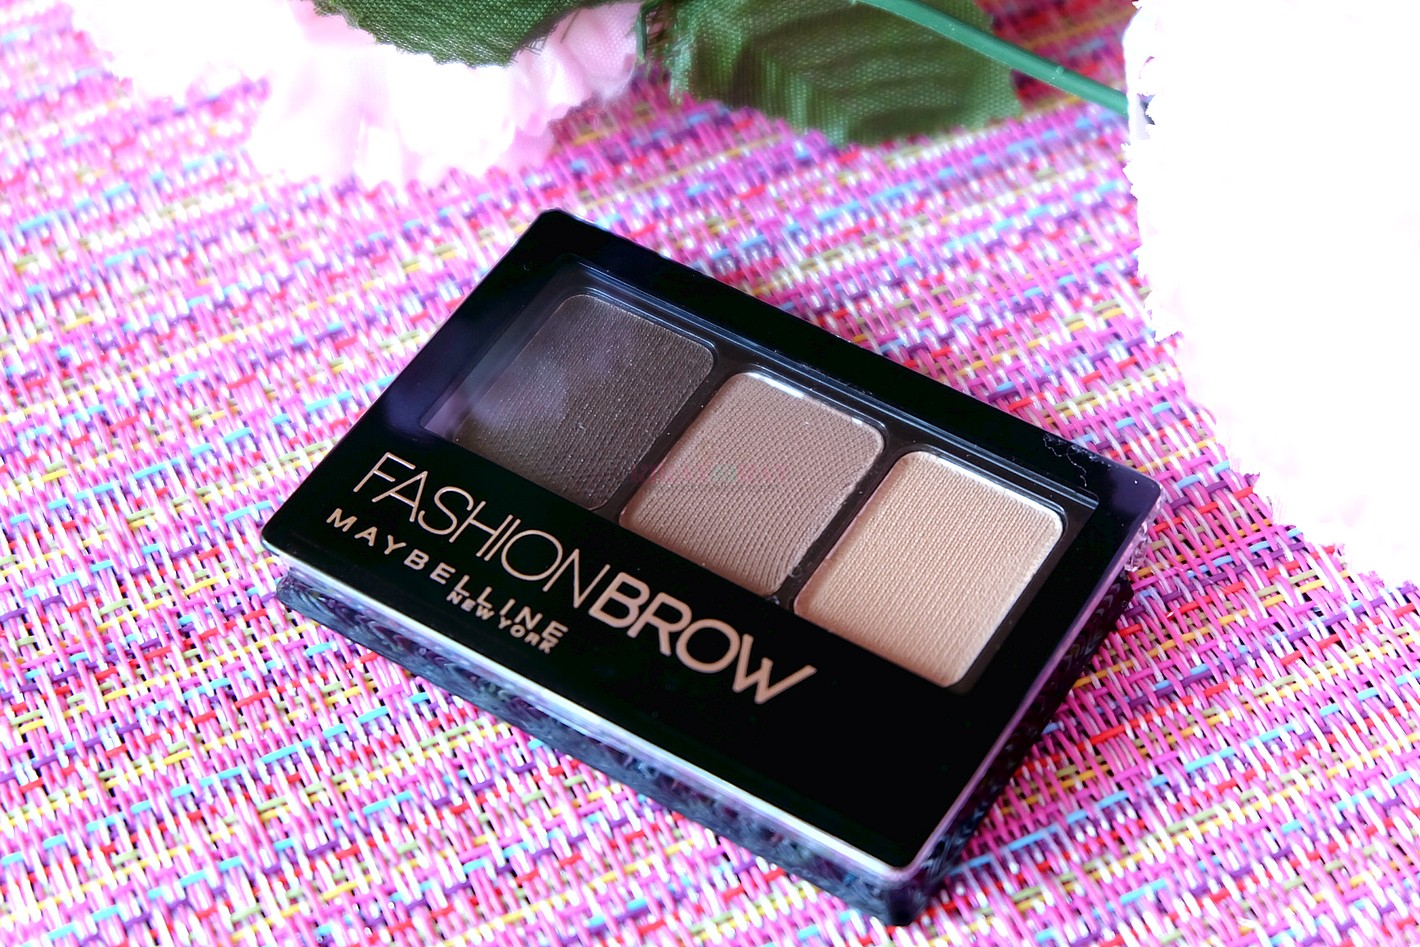 Fashion Brow 3d Contouring Palette Review Maybelline X Calyxta